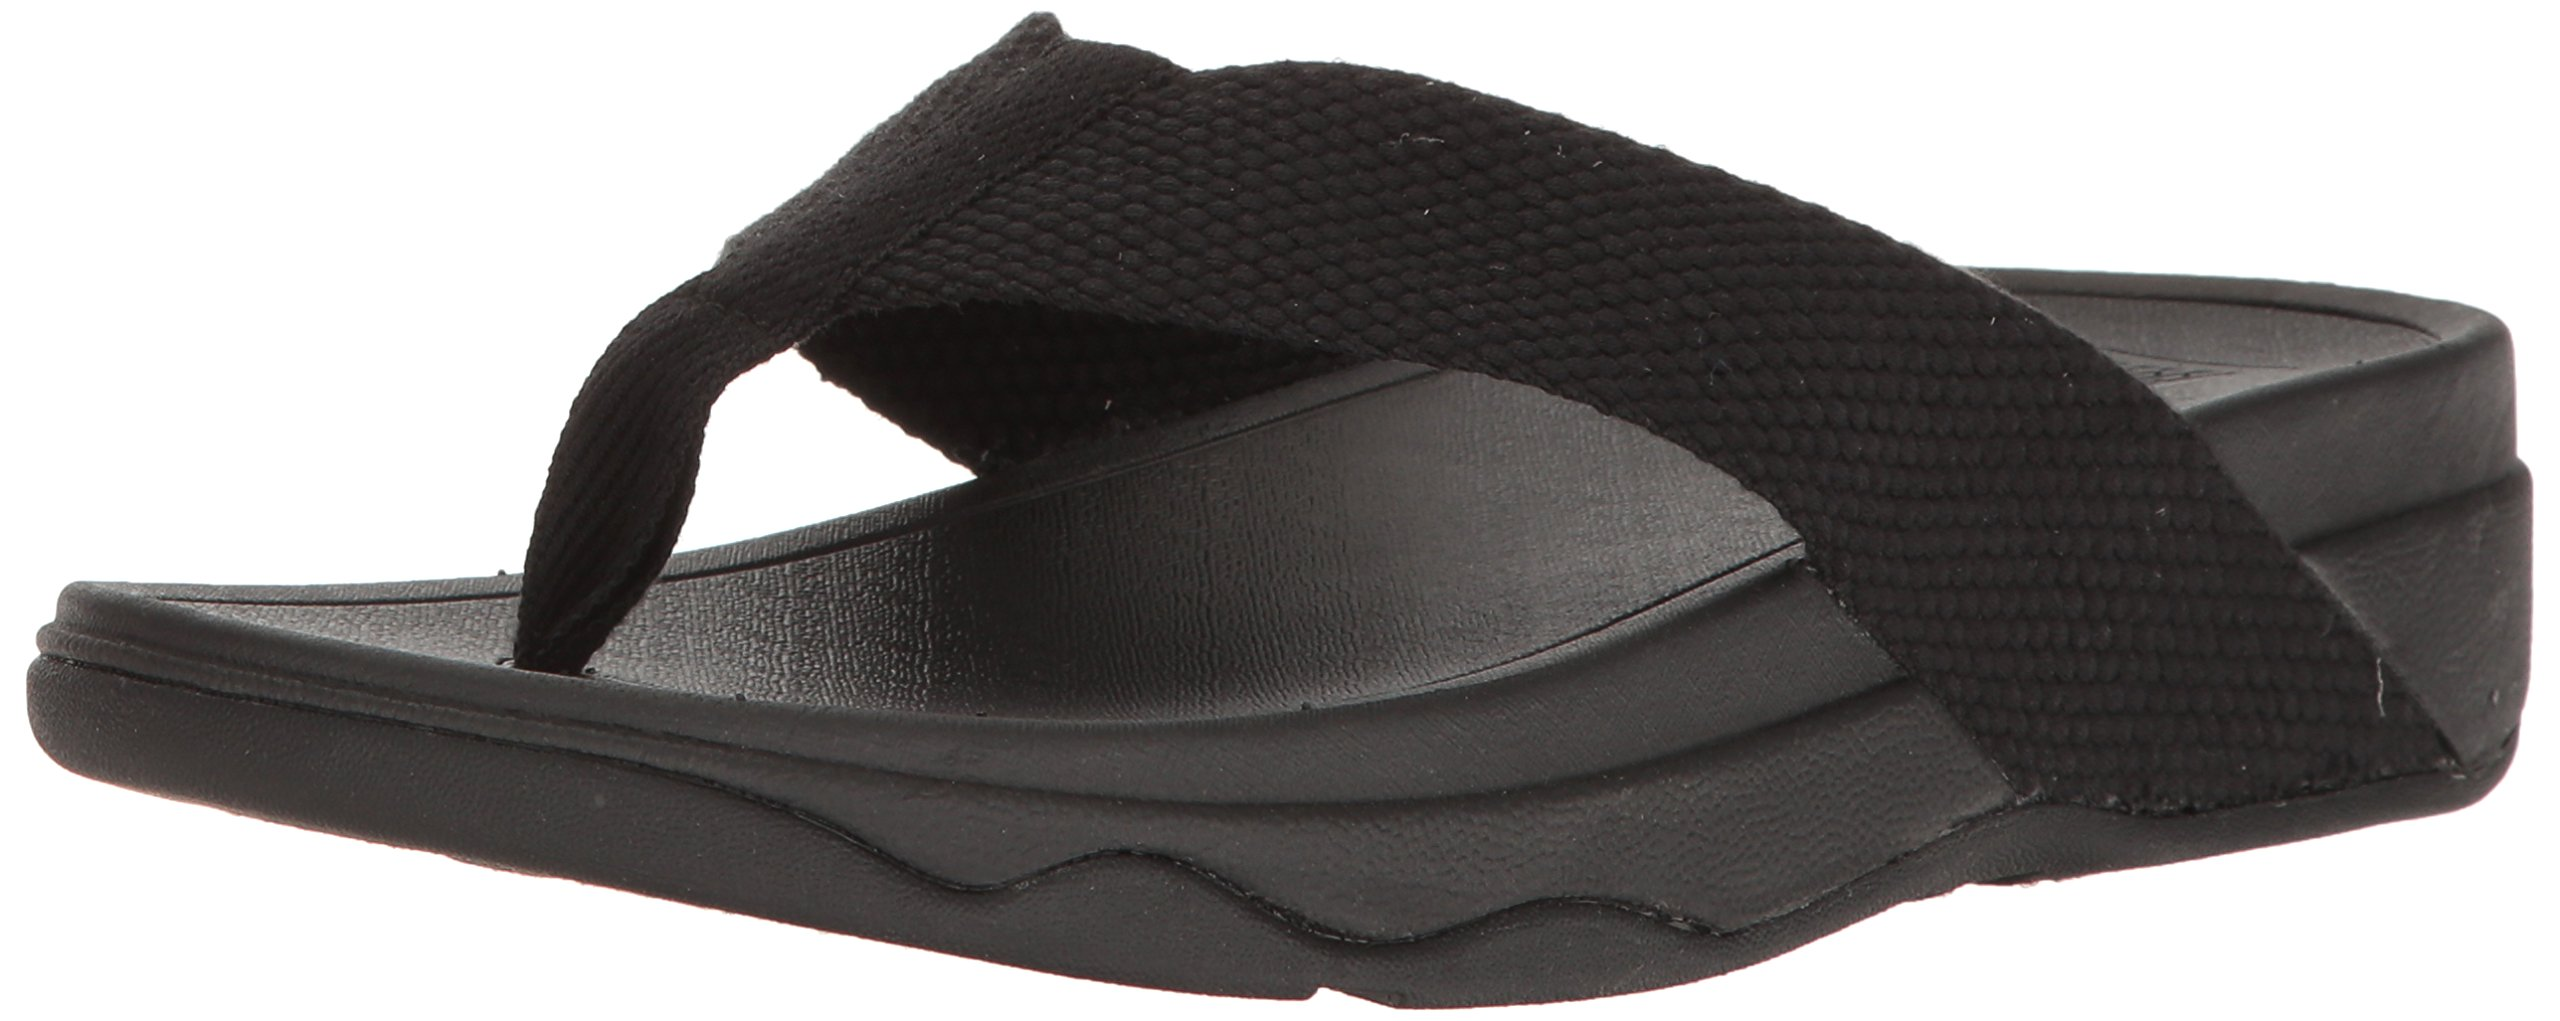 FITFLOP Women's Surfa Flip-Flop, Black, 9 M US by FITFLOP